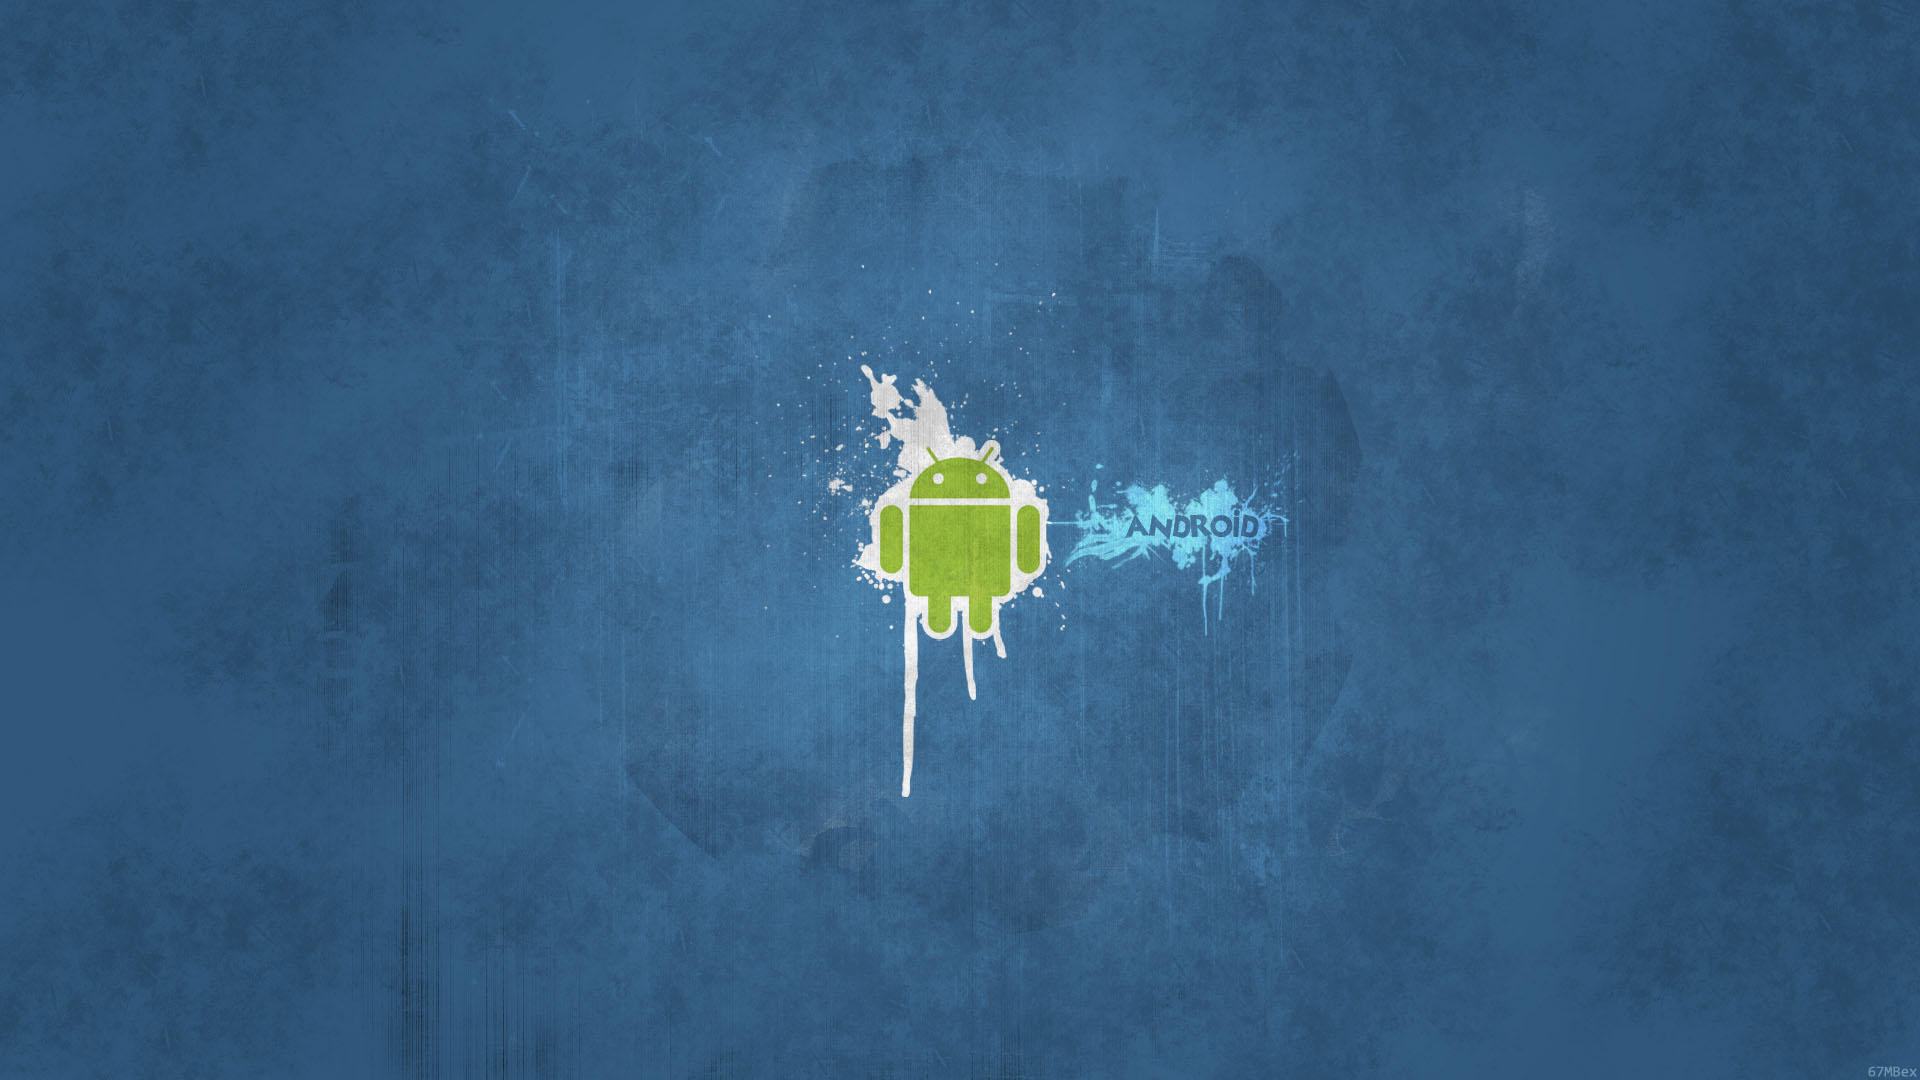 wallpaper android full hd google